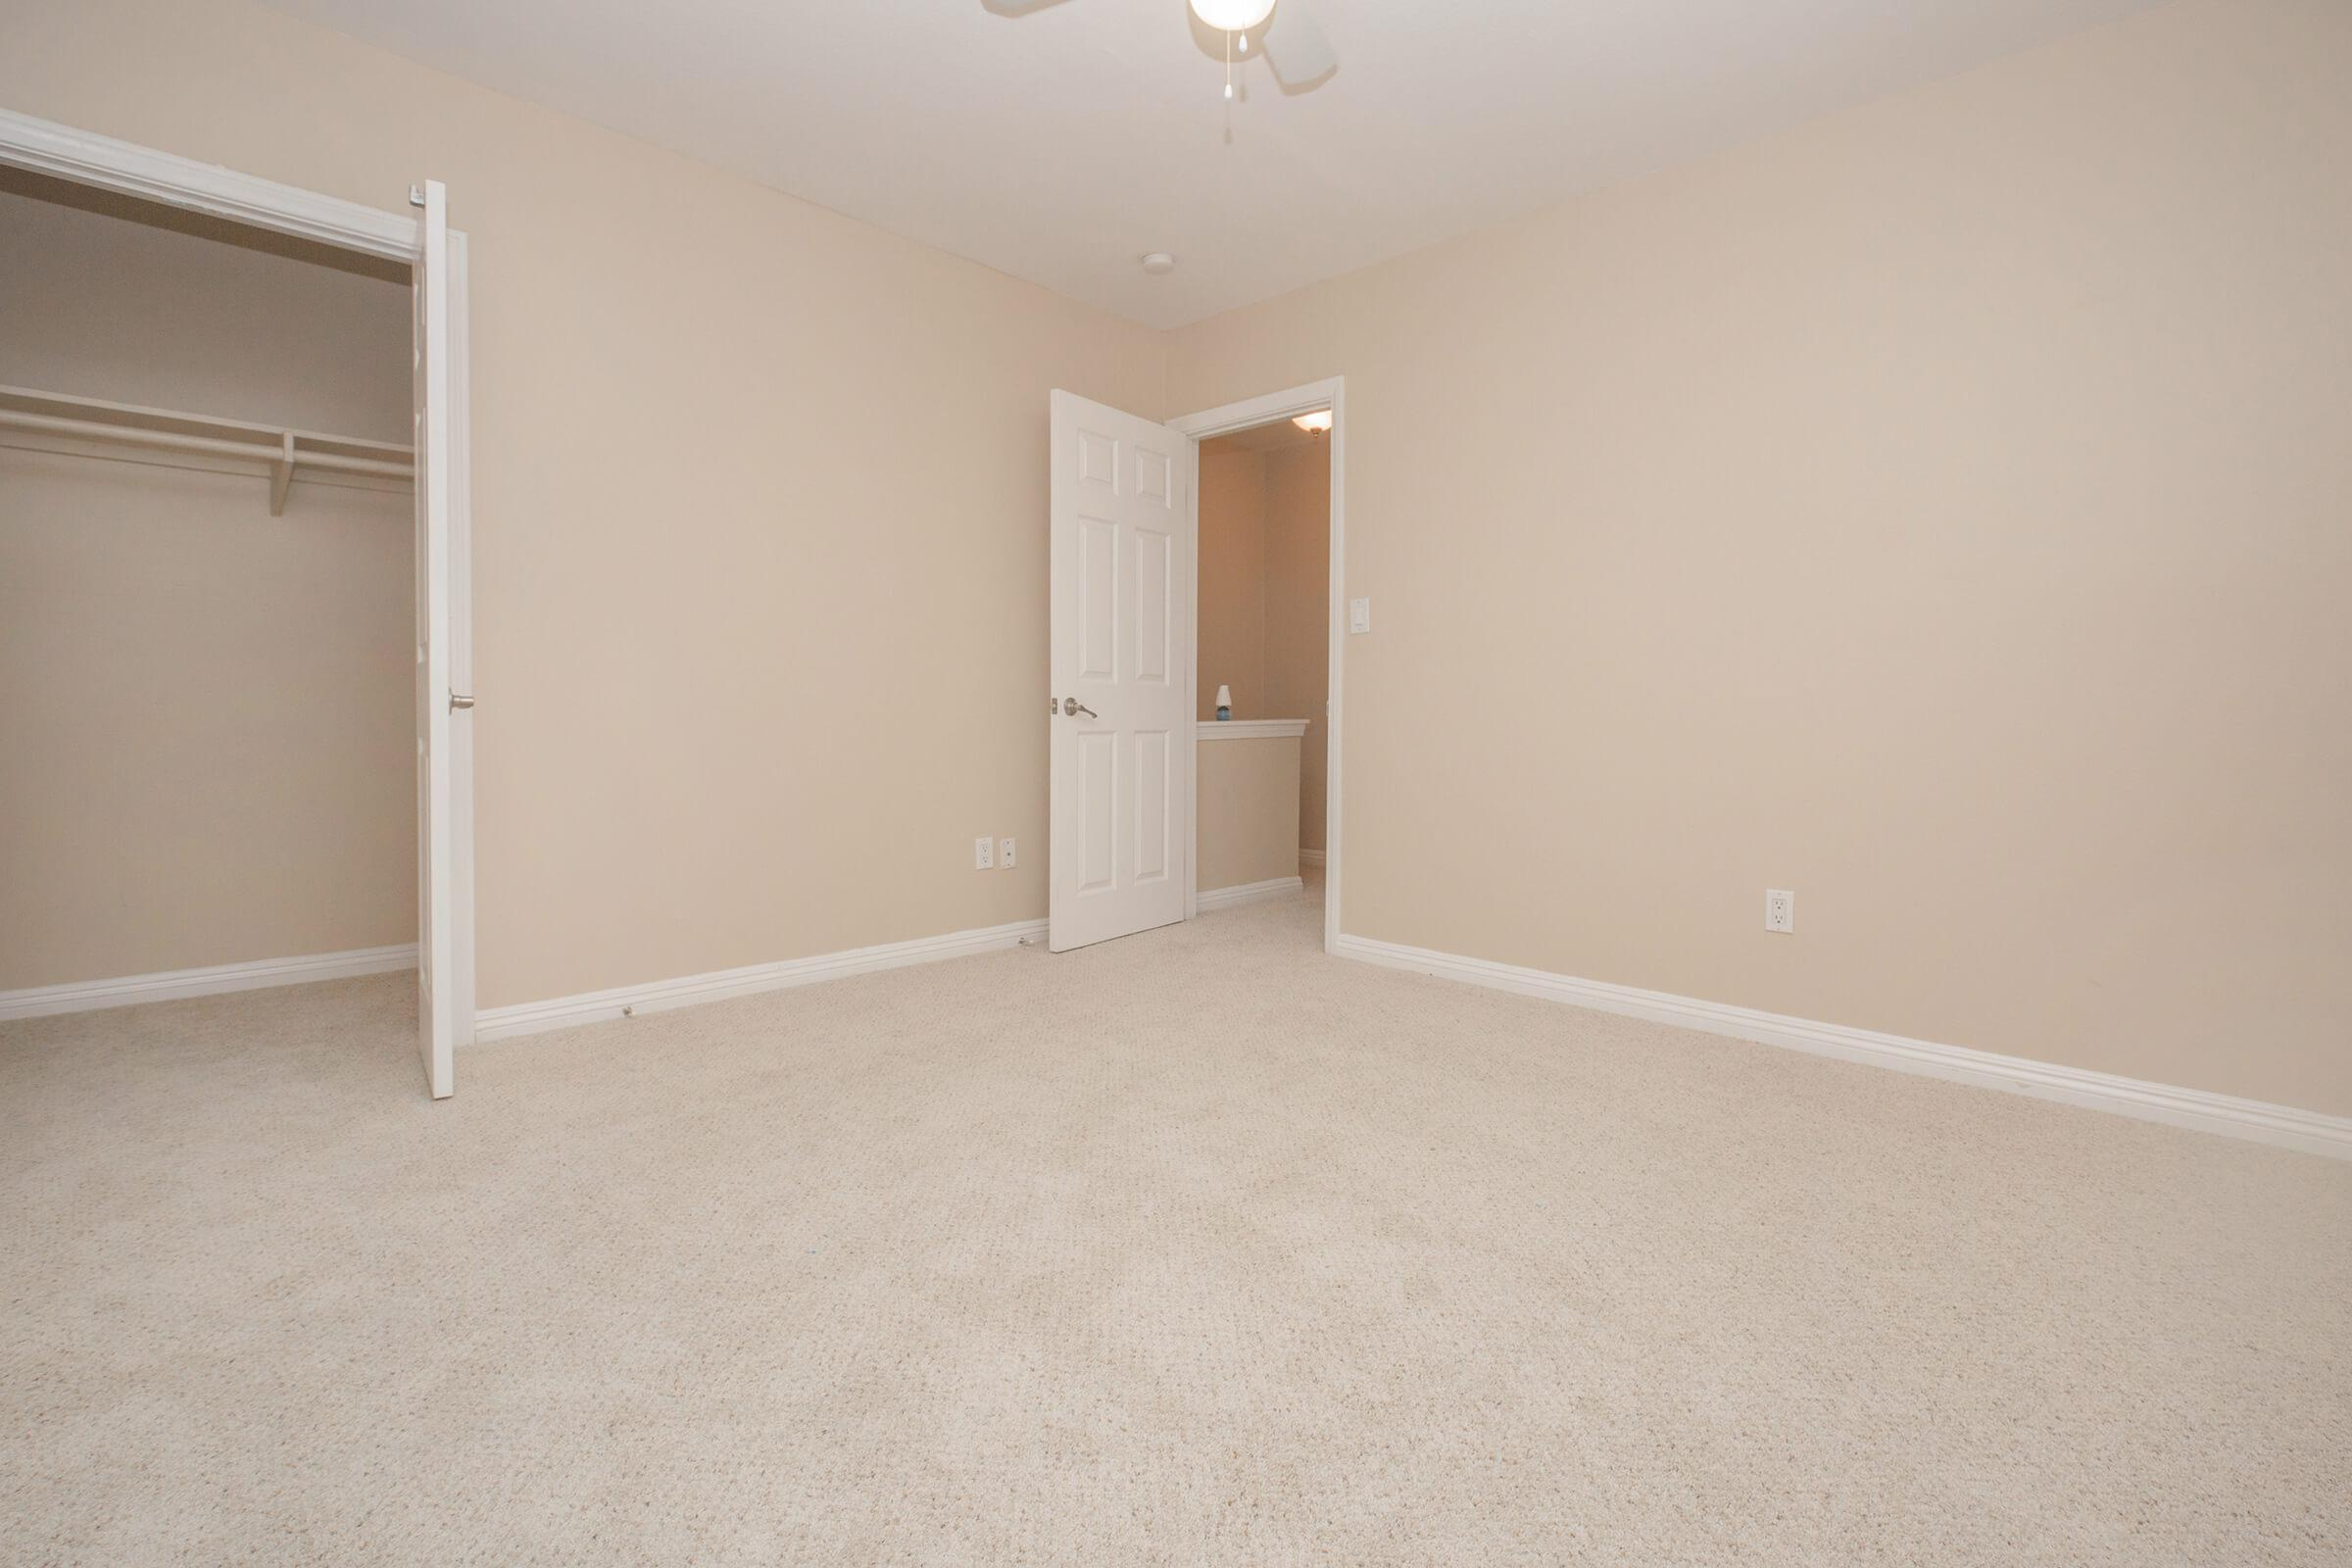 Vacant bedroom with open closet